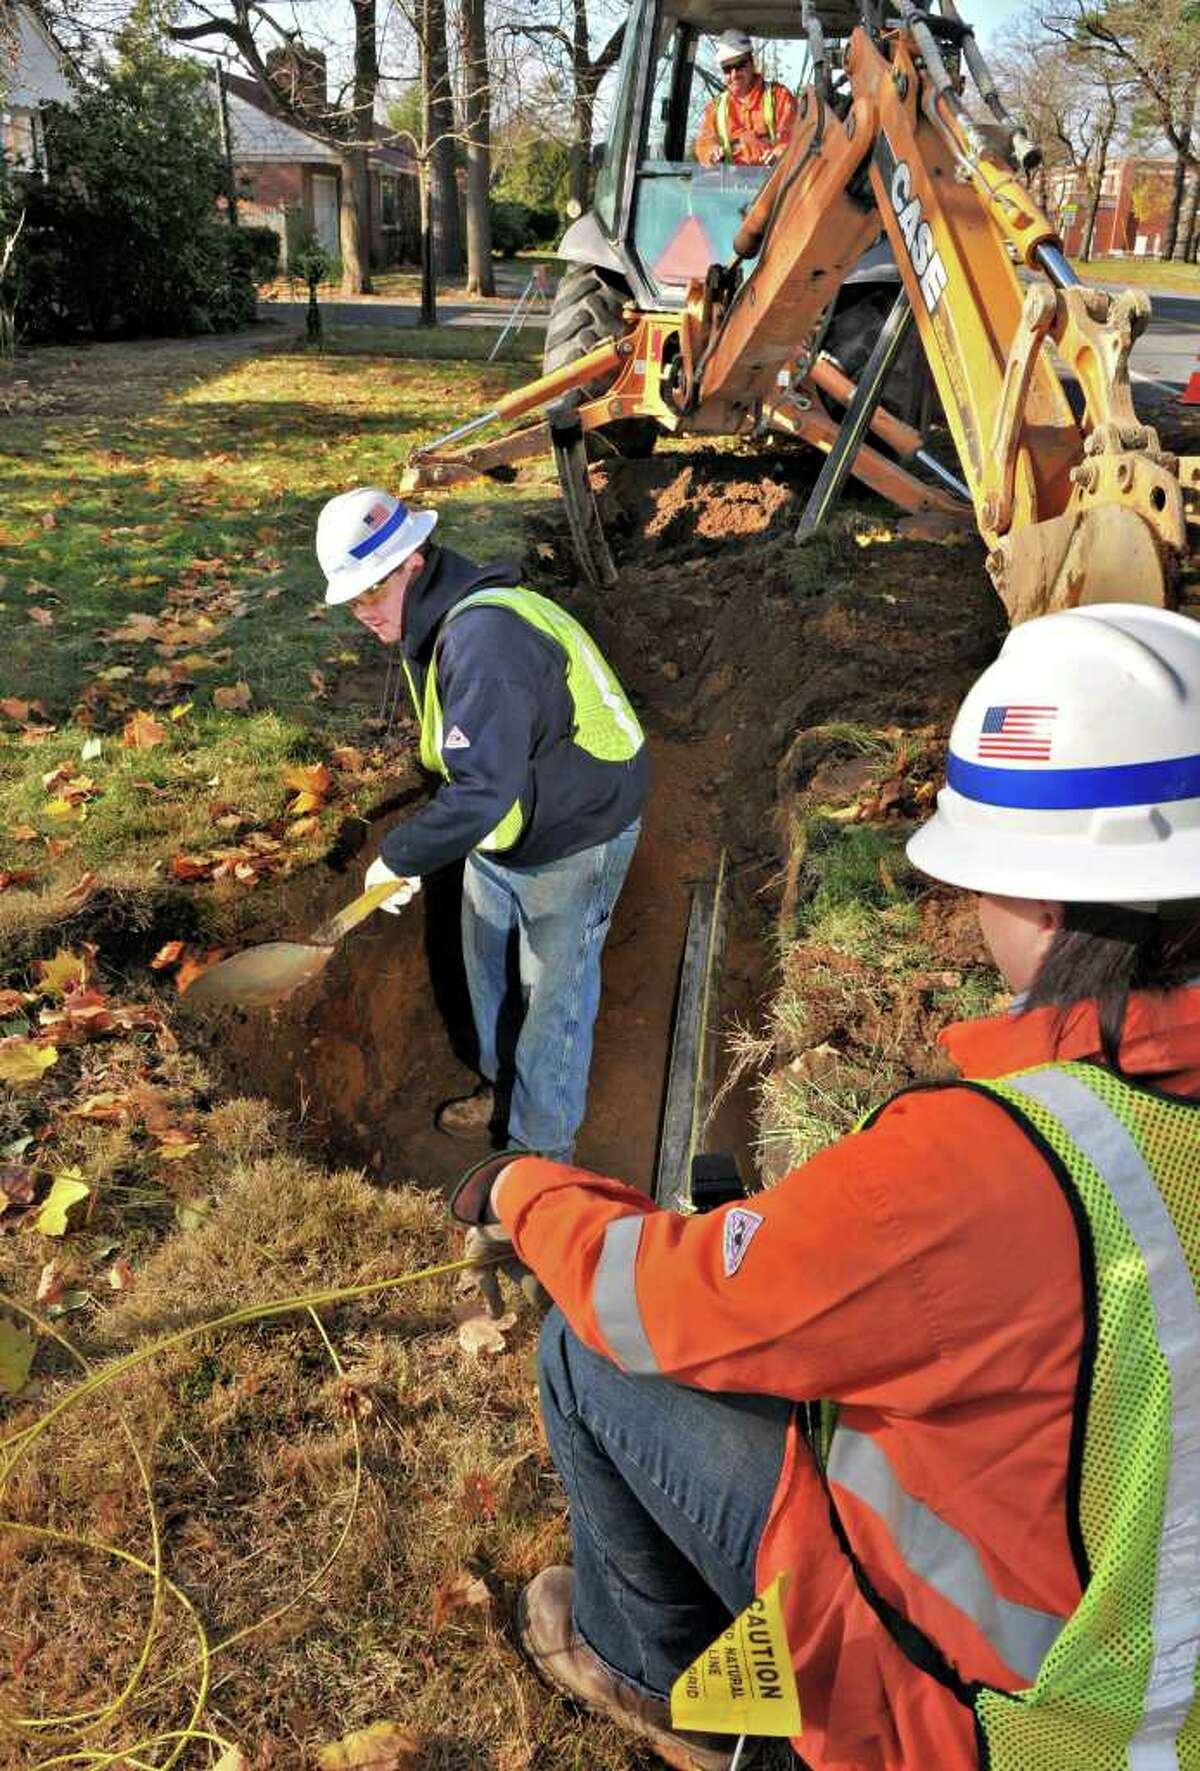 National Grid crew Jason Crowl, left, Tom Bates (in excavator's cab) and Lynn Dunlavey work on a new gas pipe installation on Lake Avenue in Saratoga Springs Thursday morning Nov. 18, 2010. (John Carl D'Annibale / Times Union)